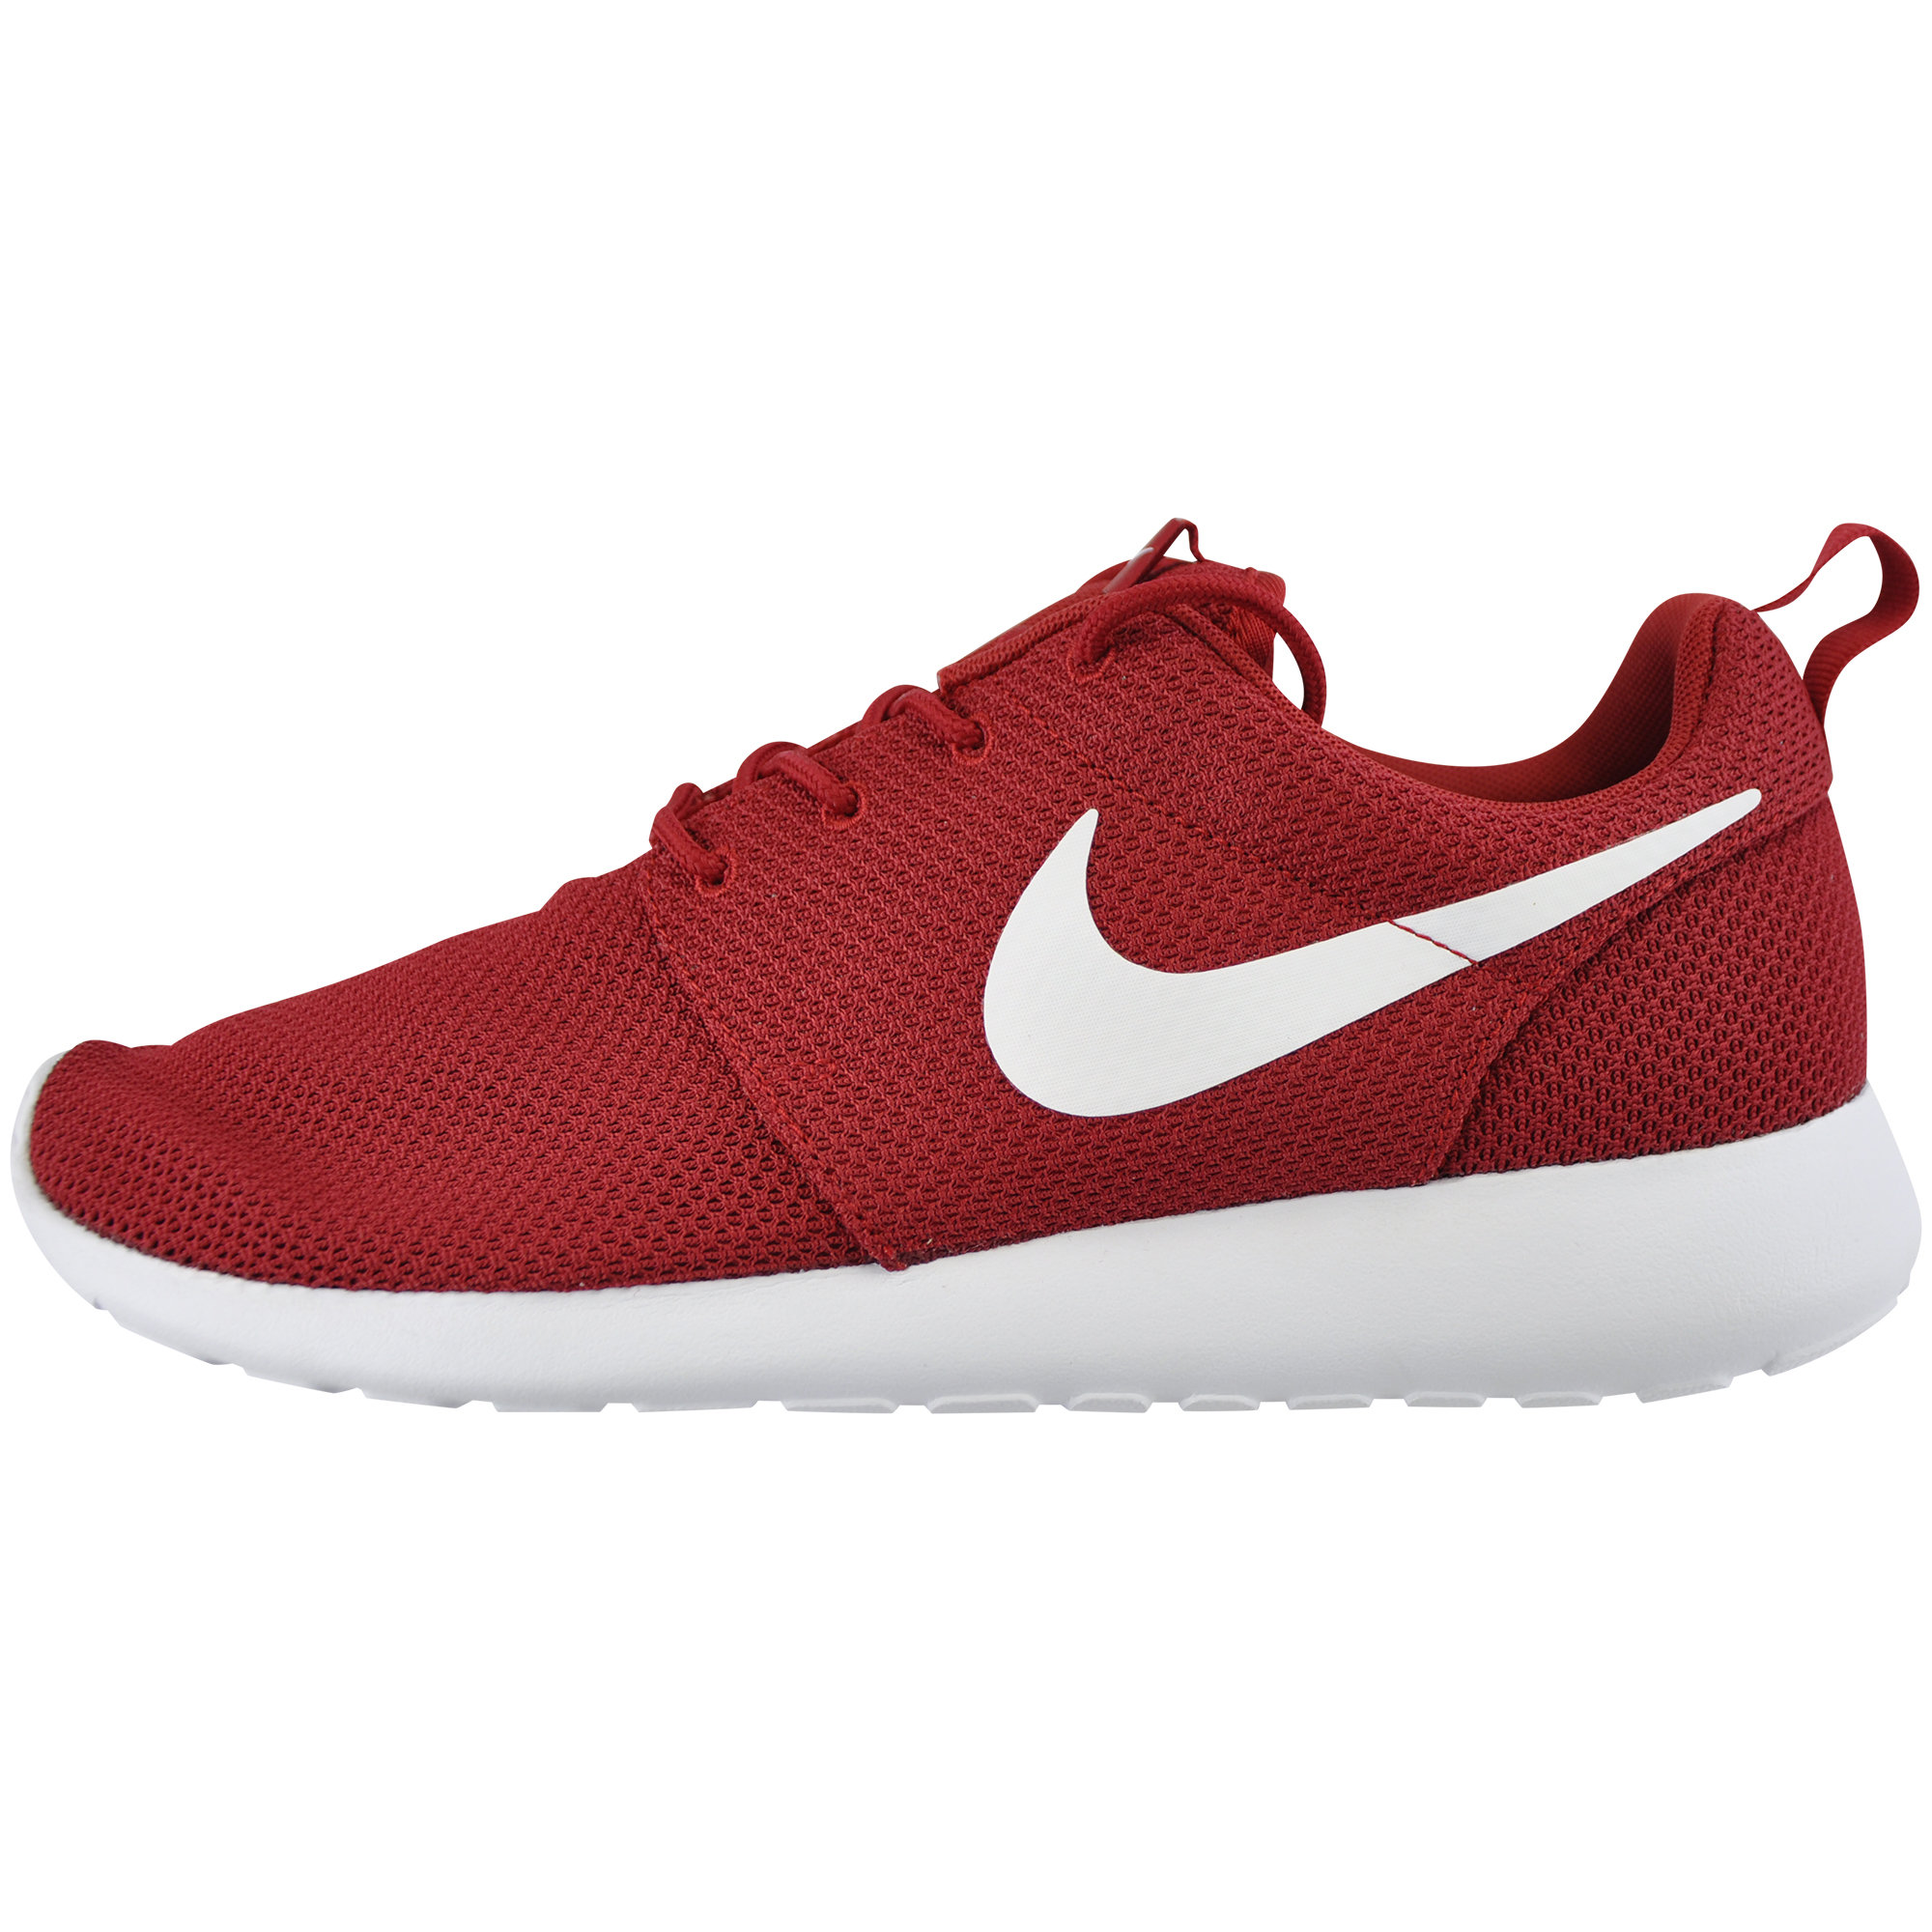 nike free run 2 ext rosherun roshe one air max thea tavas. Black Bedroom Furniture Sets. Home Design Ideas